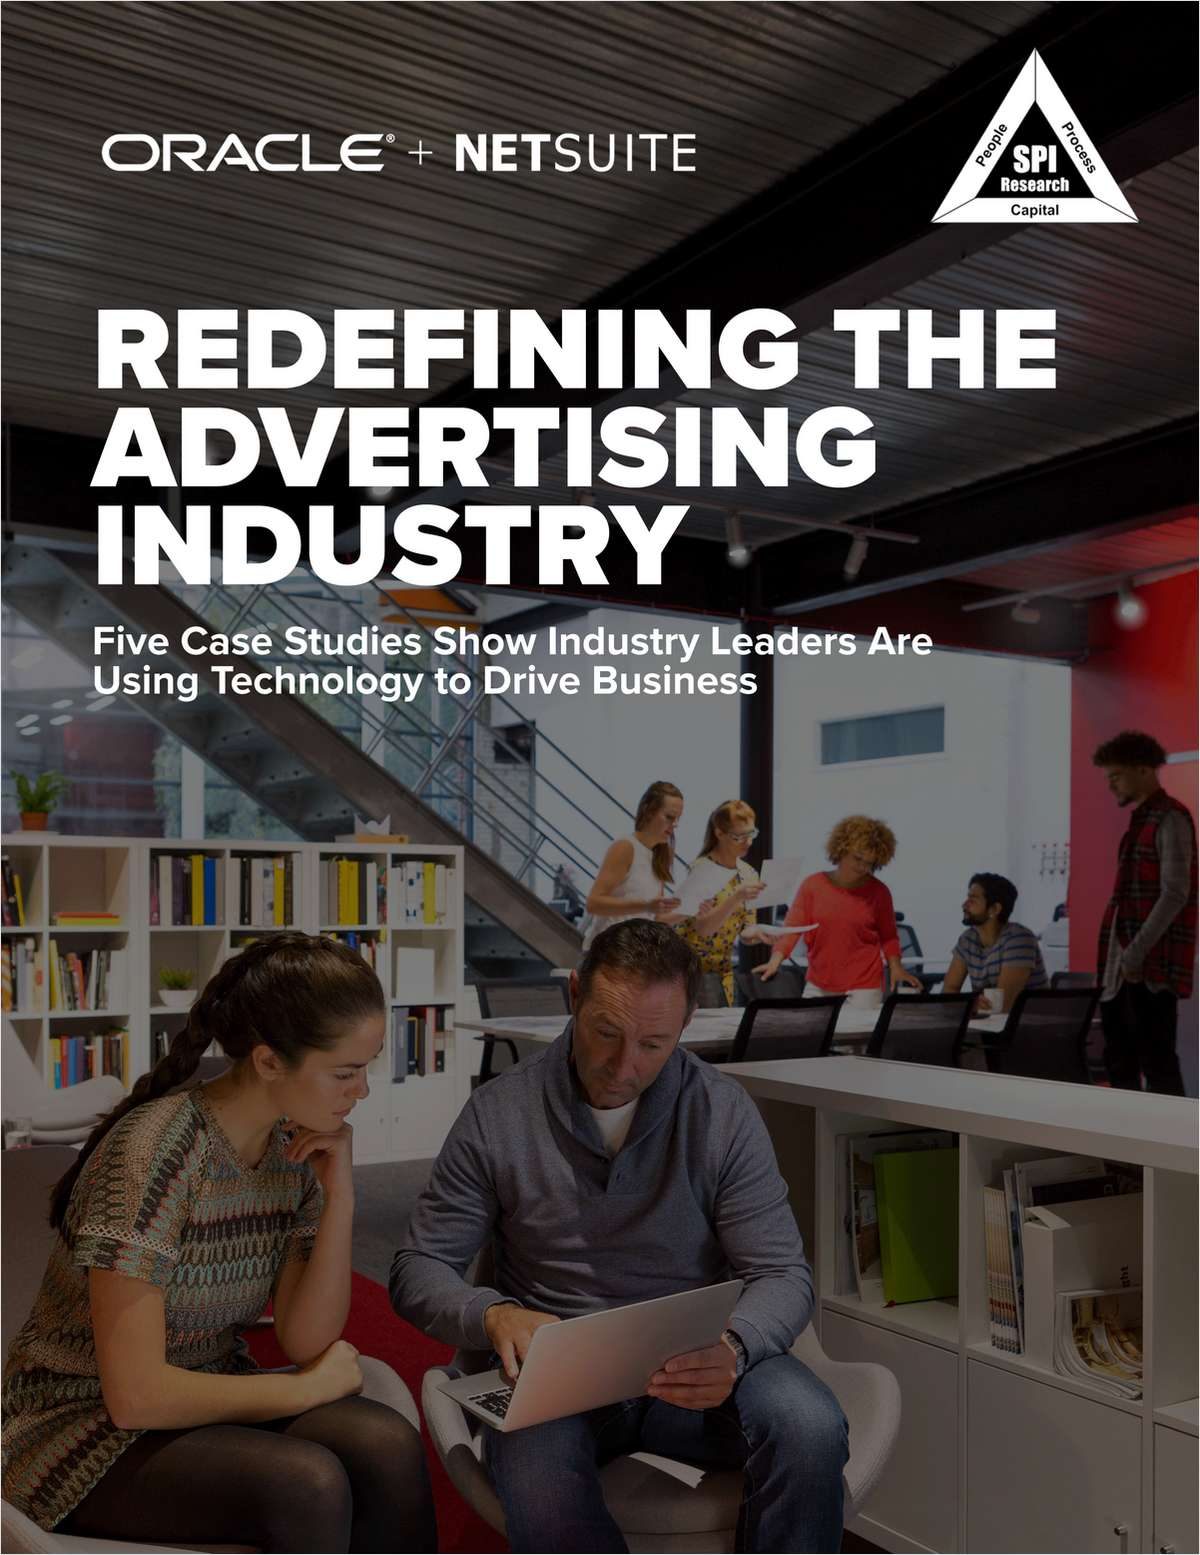 Financial Management Software is Redefining the Advertising Industry